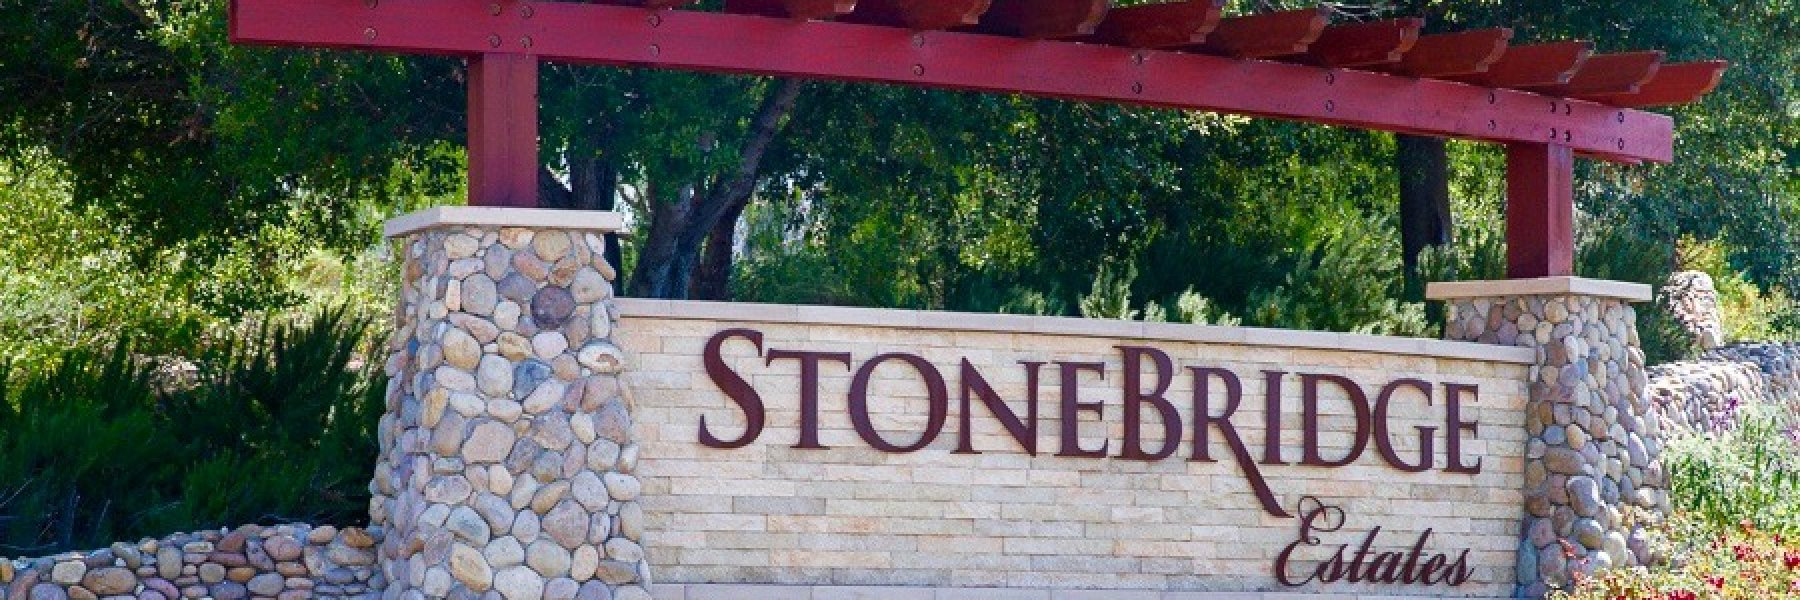 Stonebridge is a community of homes in San Diego California